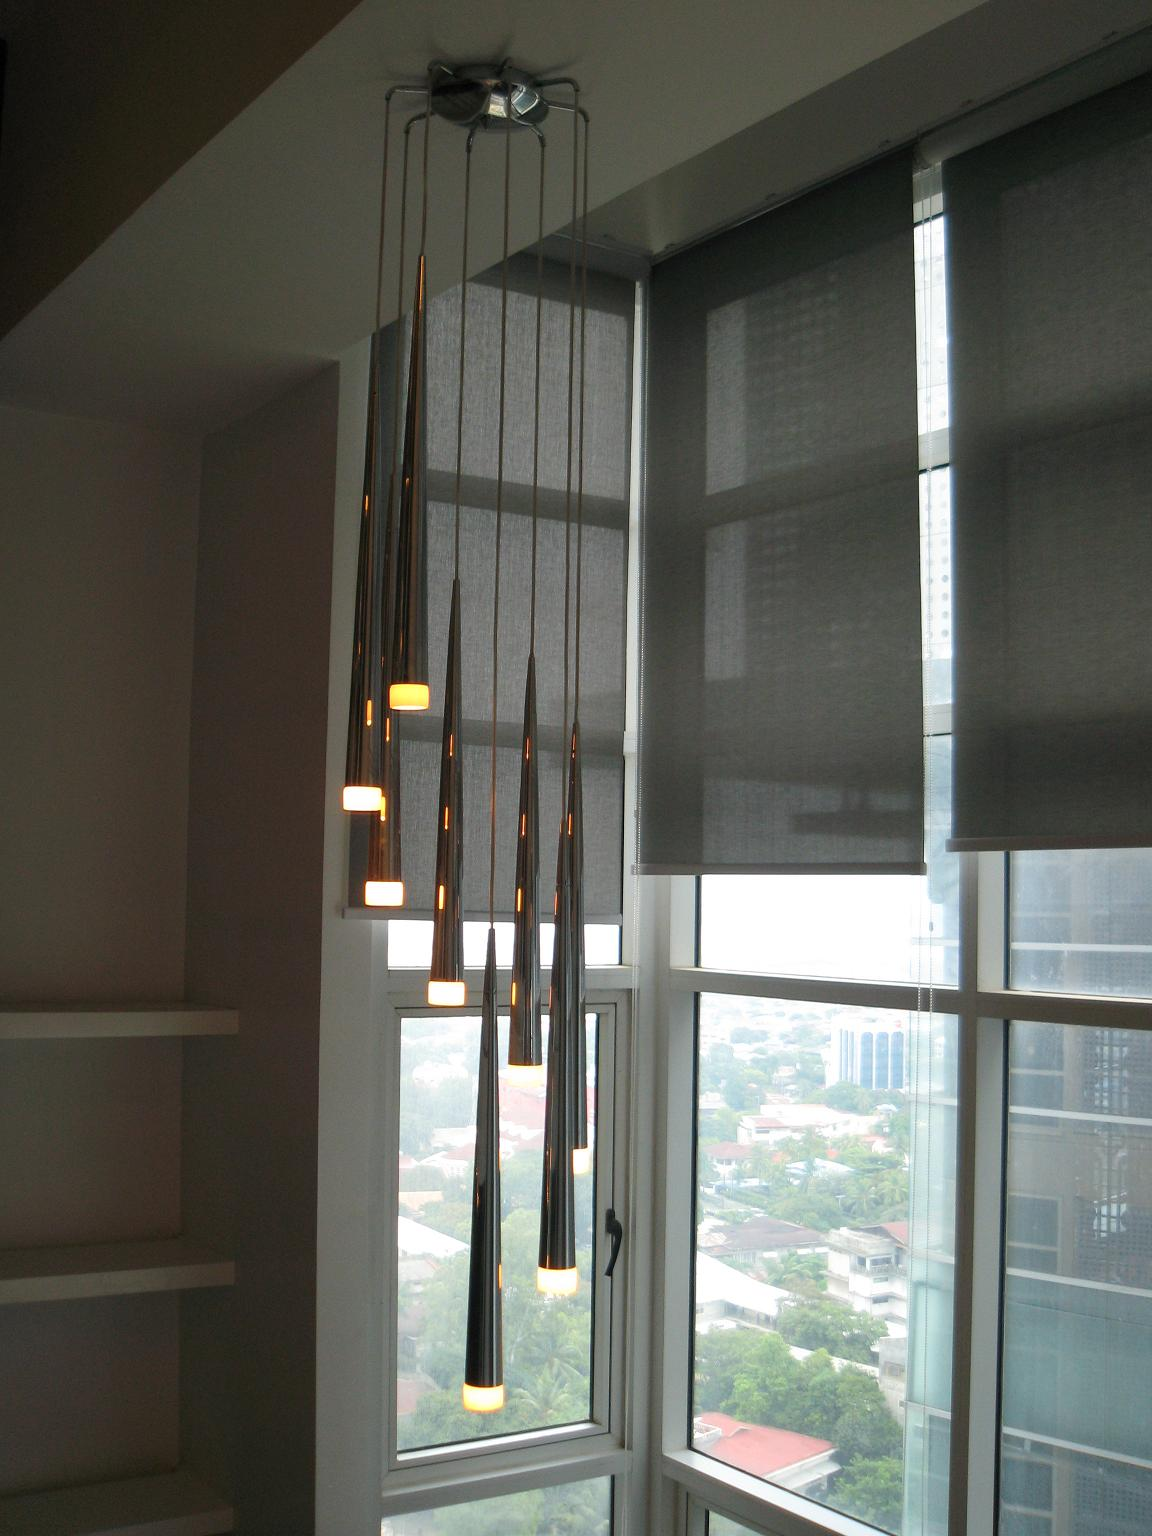 FOR RENT / LEASE: Apartment / Condo / Townhouse Cebu > Cebu City 3